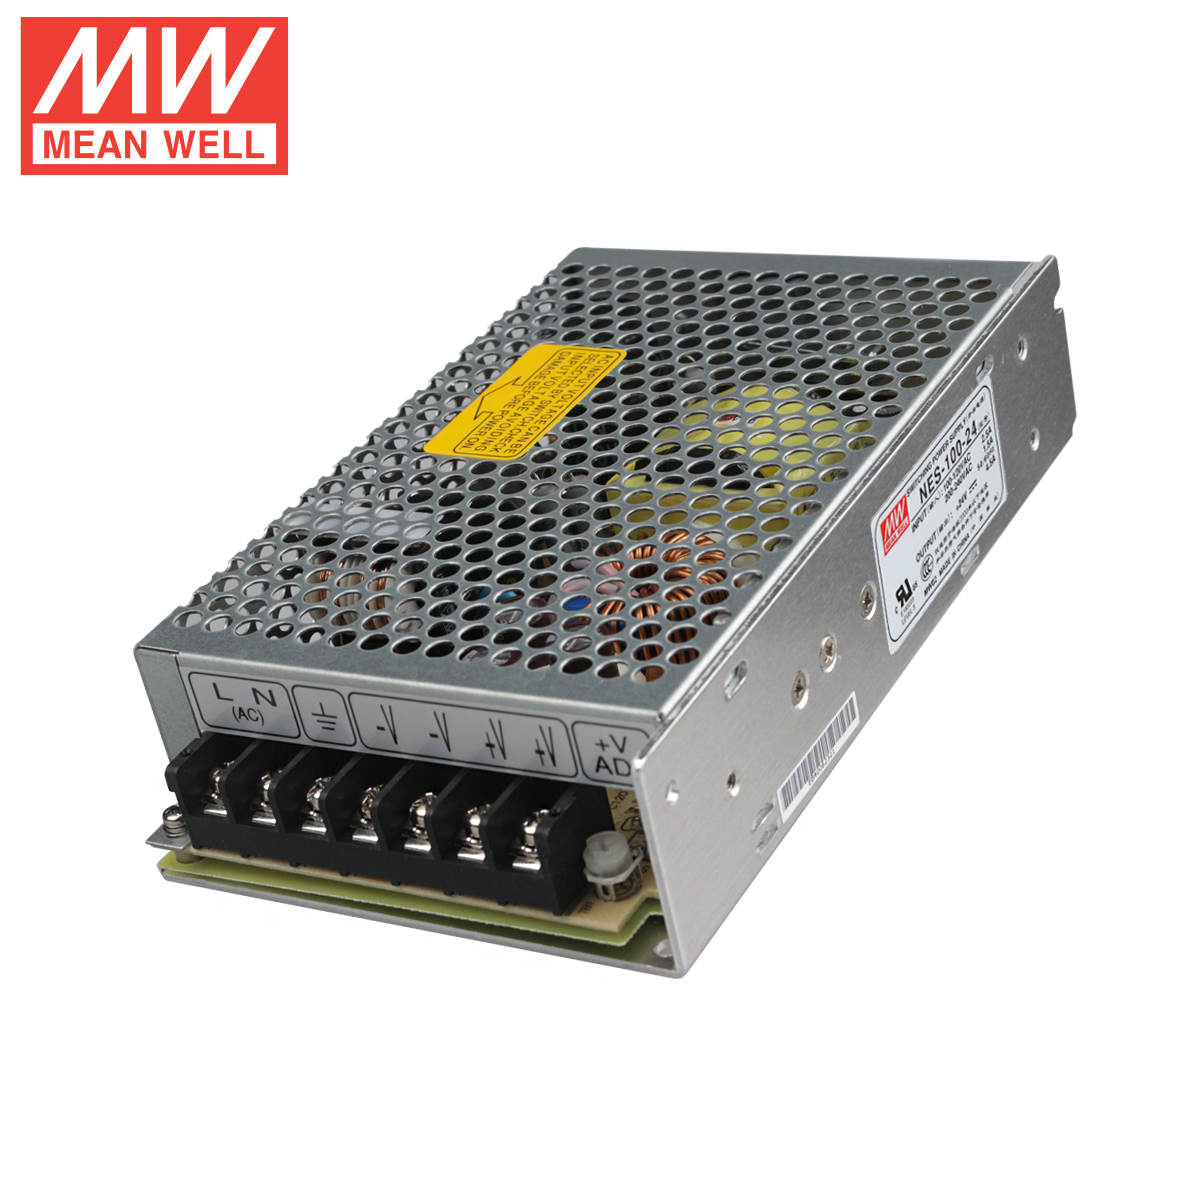 [Authorized total generation] nes-100-24 meanwell taiwan meanwell switching power supply 100 w 24v4. 5a genuine